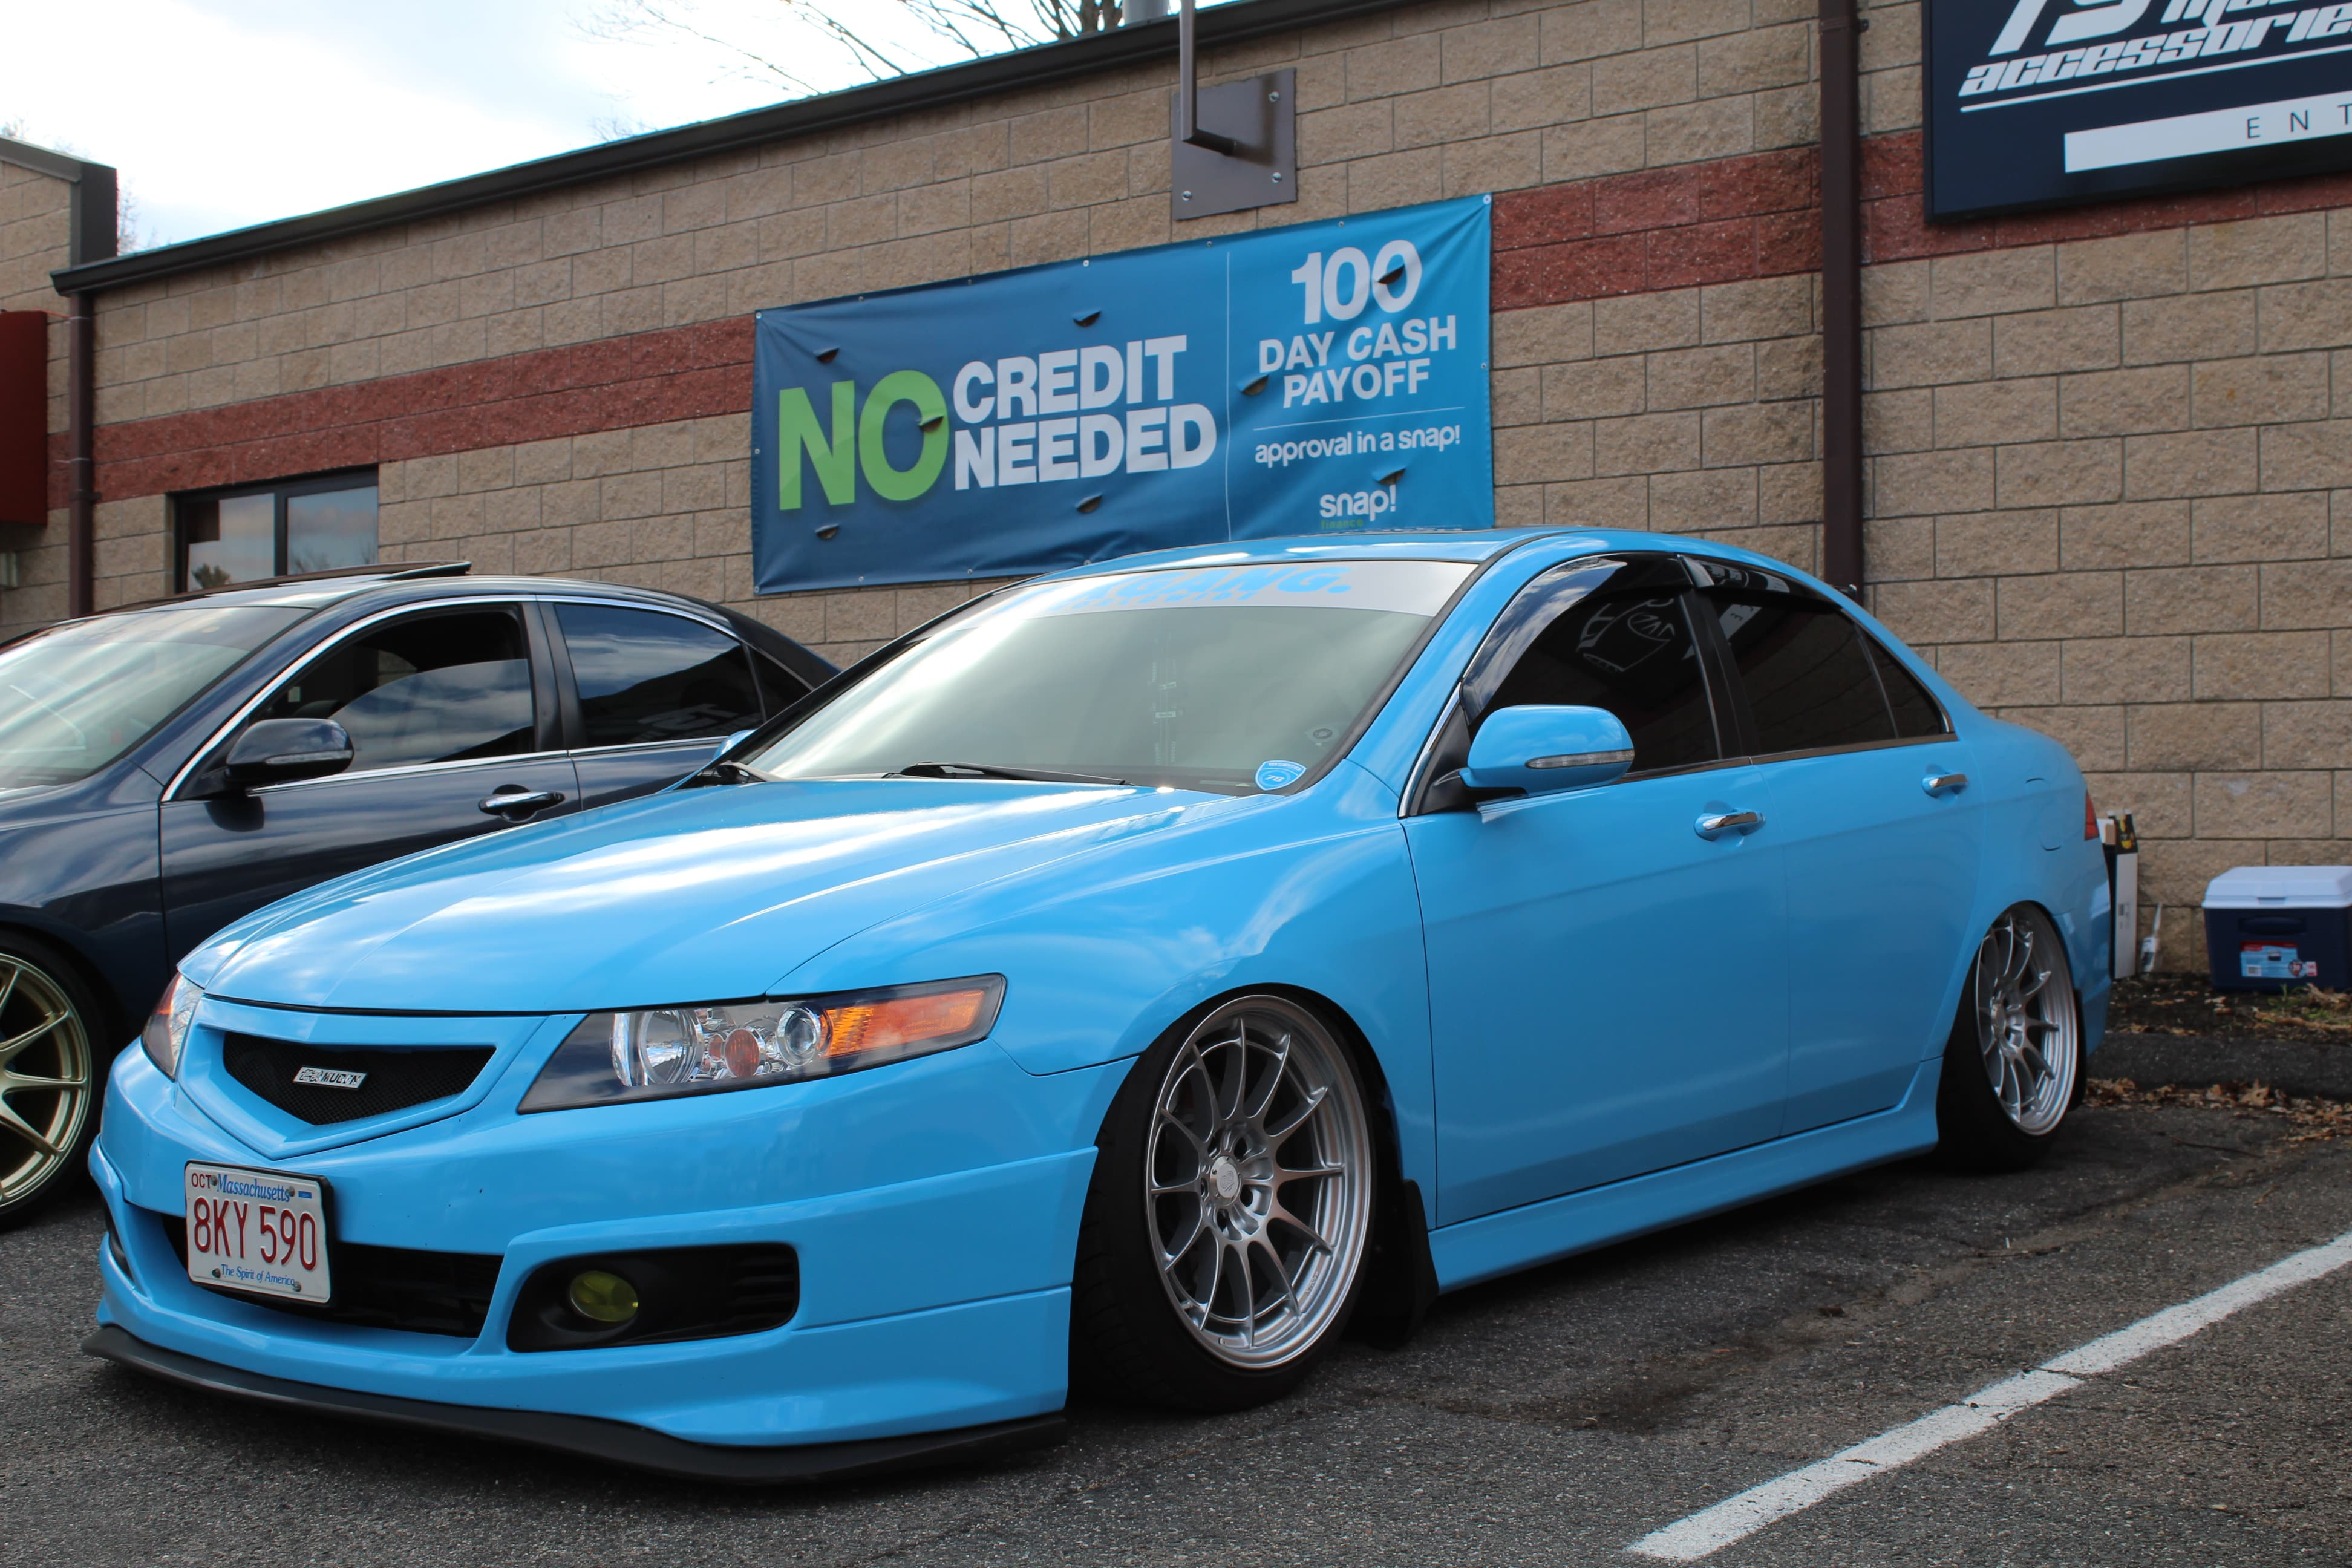 08 Patrick Despin 2007 Acura TSX PASMAG TBGLIVE